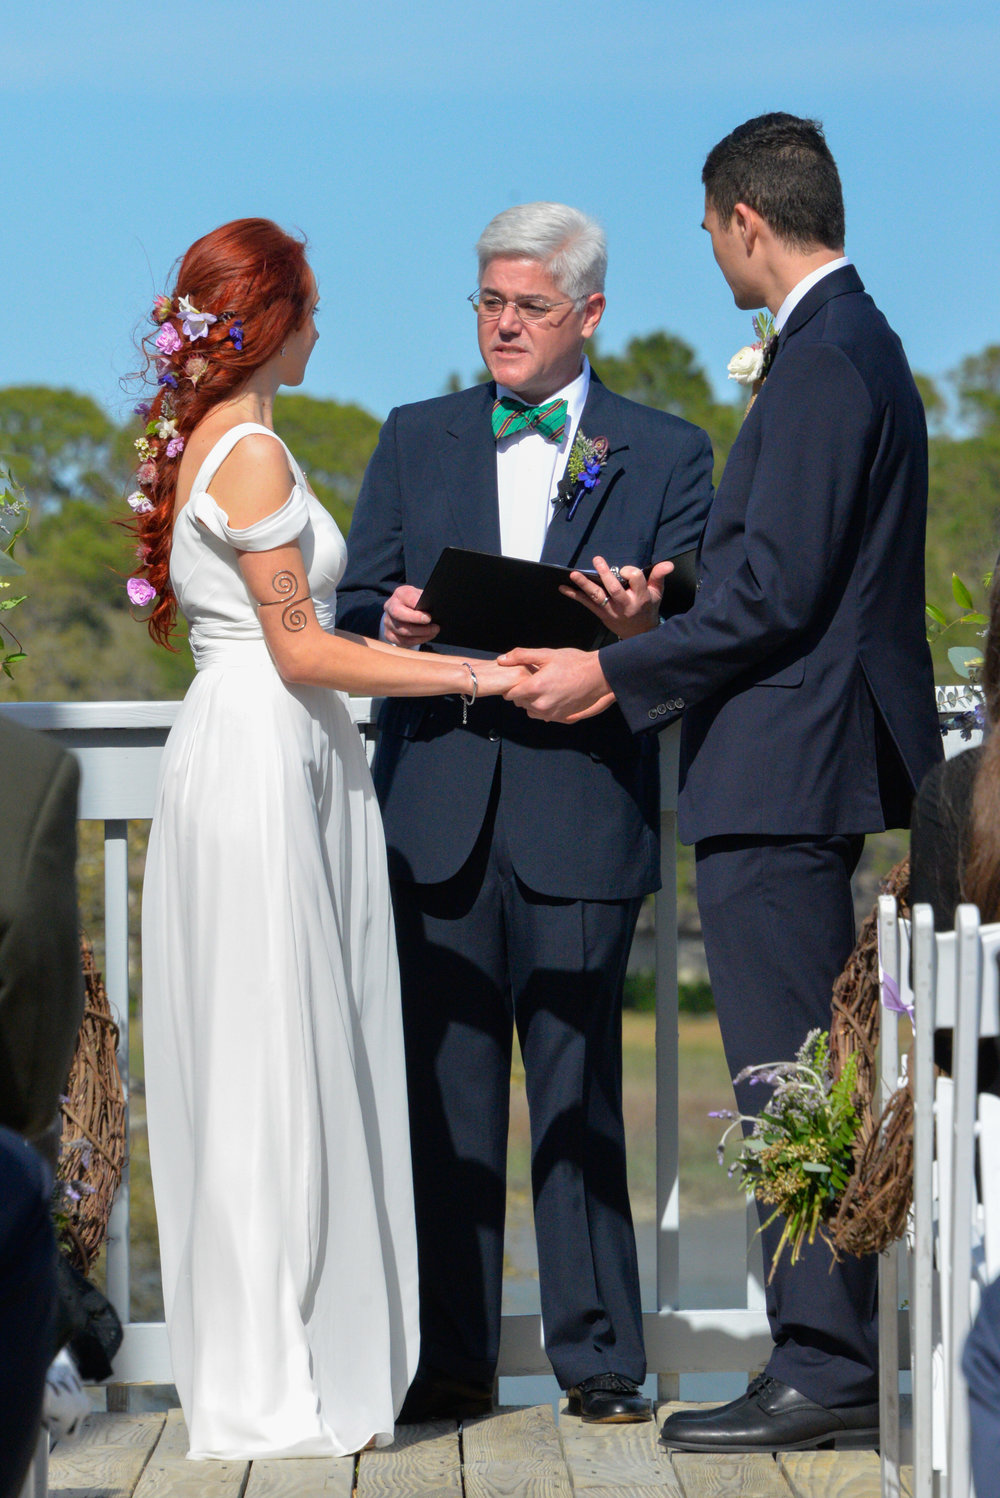 Hilton Head wedding ceremony at Wreck of the Salty Dog